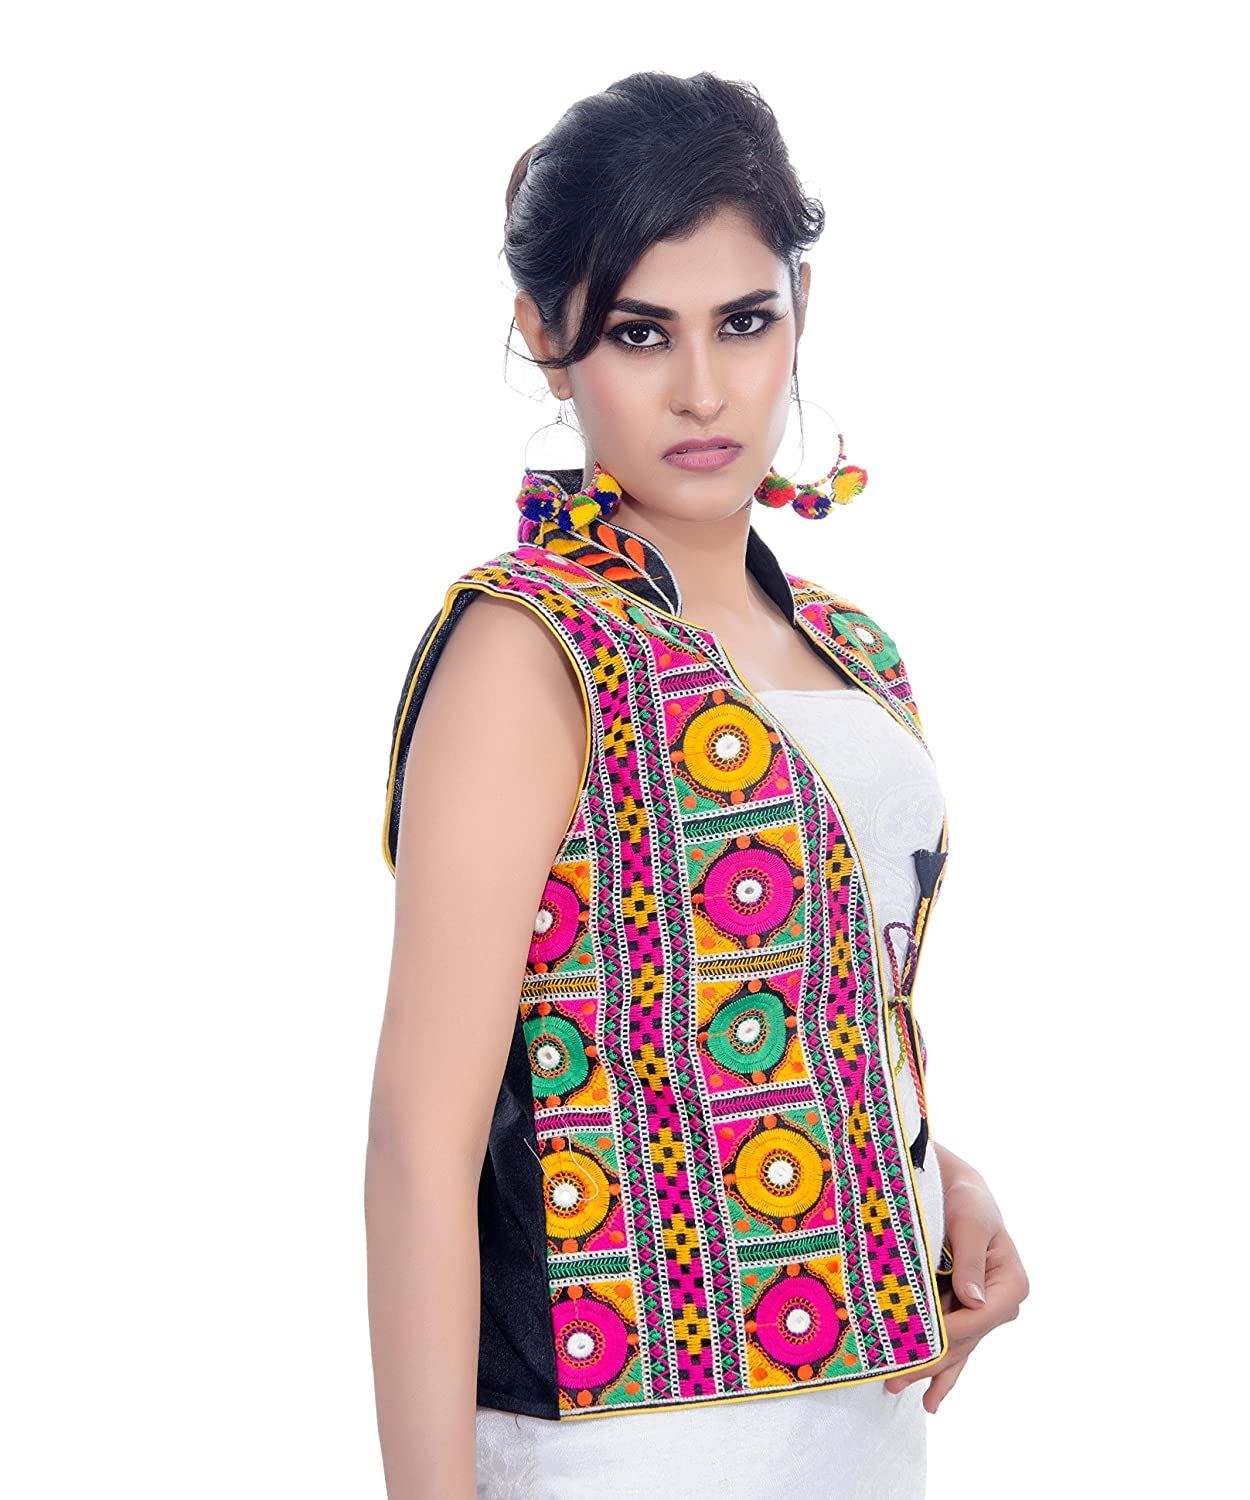 Amazon.com: Banjara India Kutchi Waist Length Jacket (Bharchak) (Black): Clothing